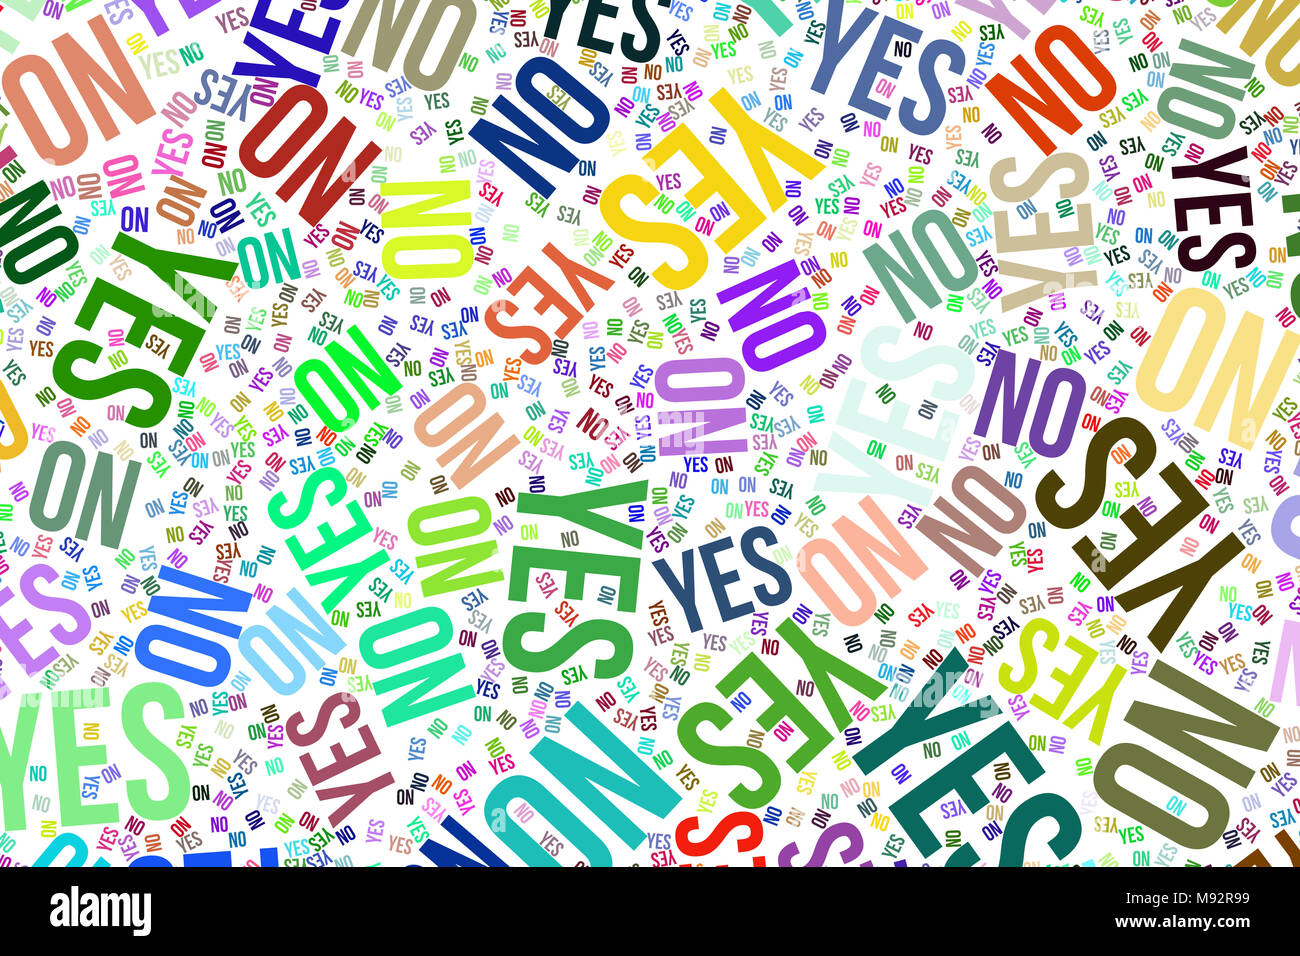 Yes or no, decision & motivation conceptual word cloud for web page, graphic design, catalog, wallpaper or background.